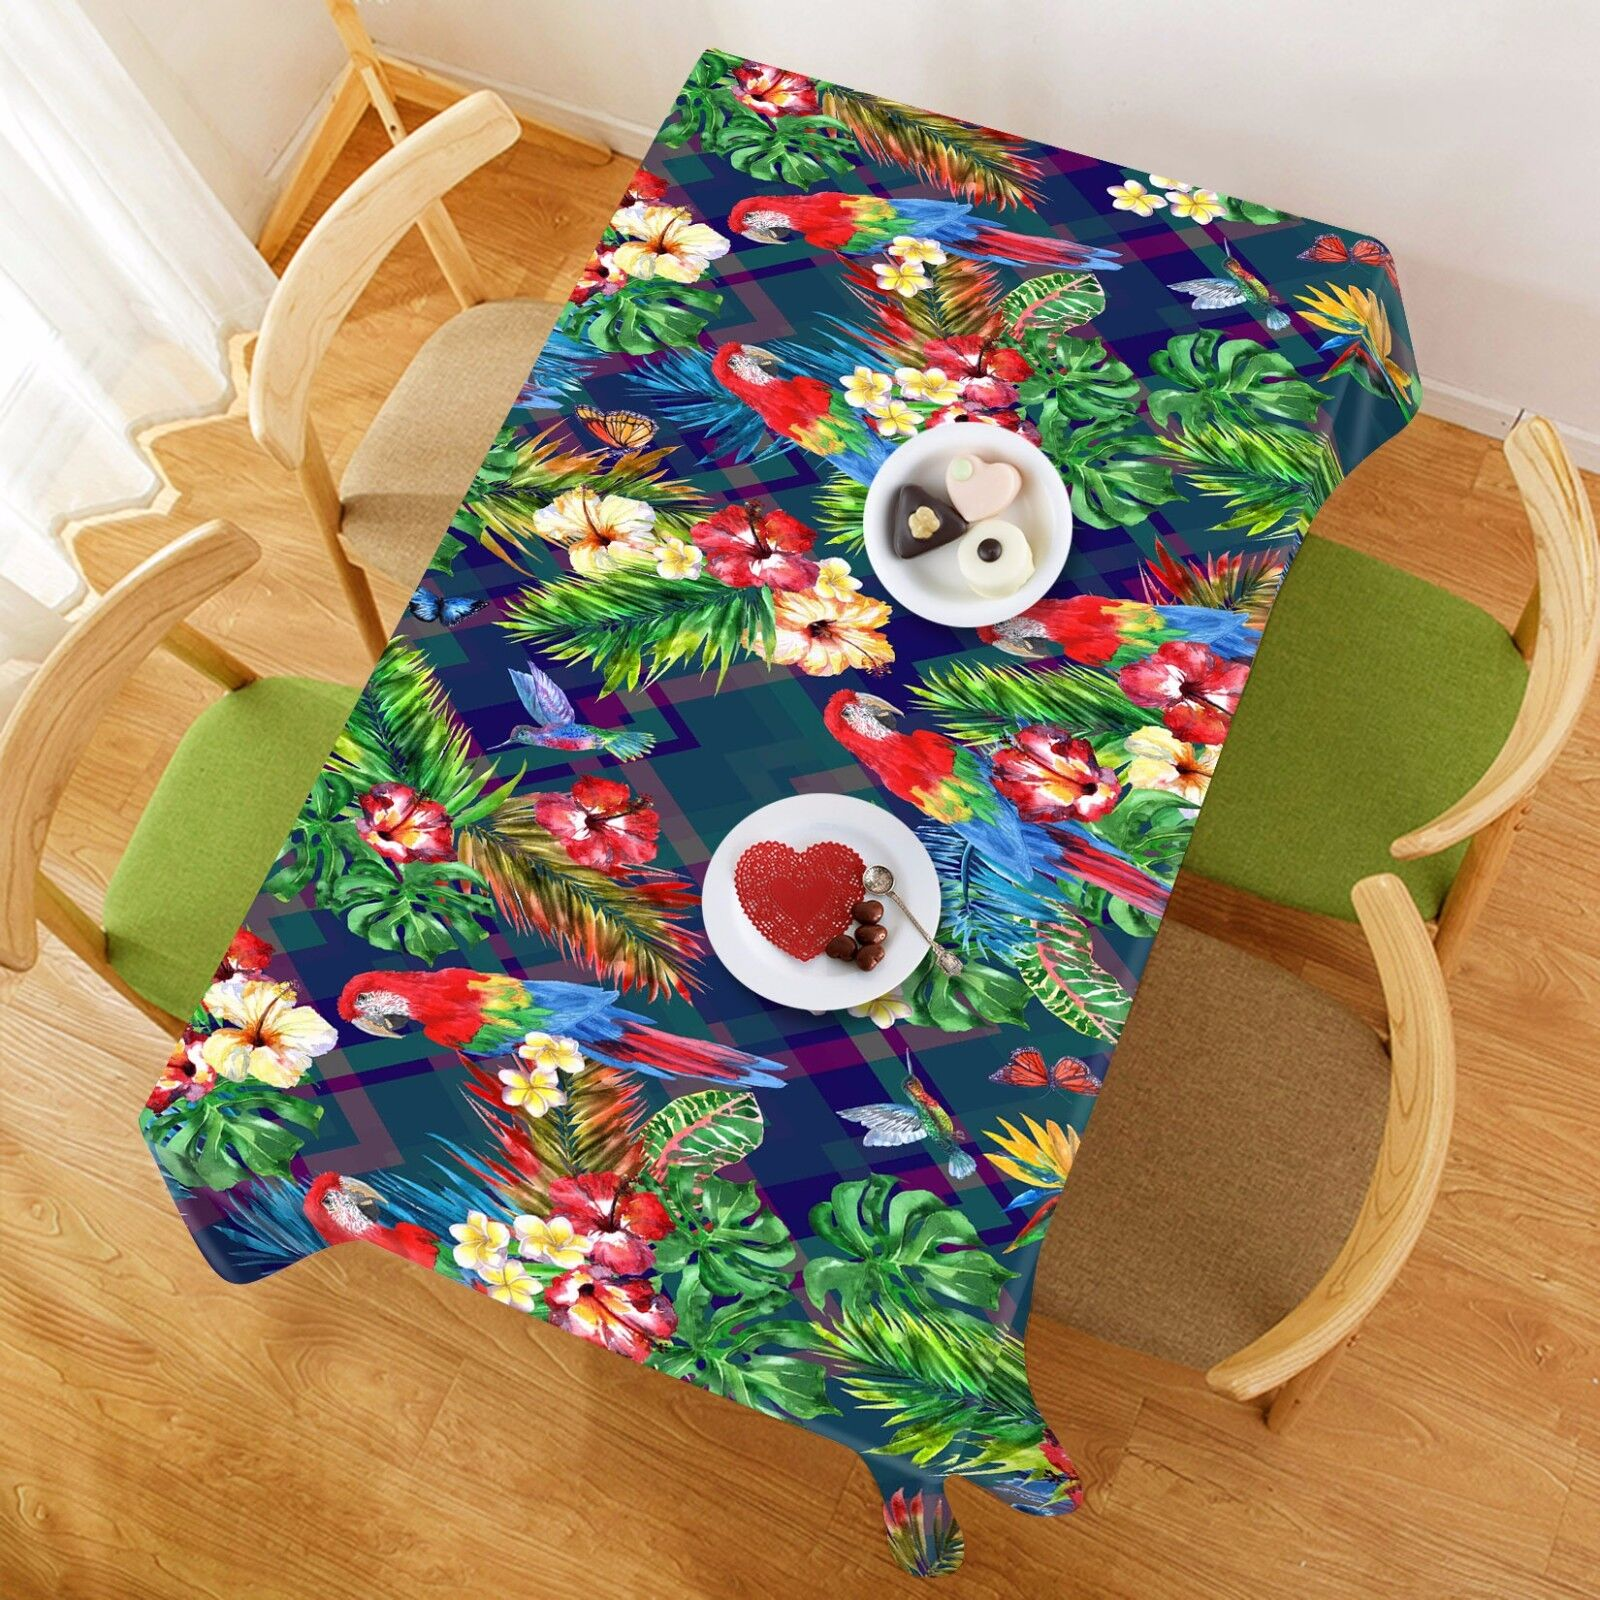 3D Birds Flowers Tablecloth Table Cover Cloth Birthday Party Event AJ WALLPAPER